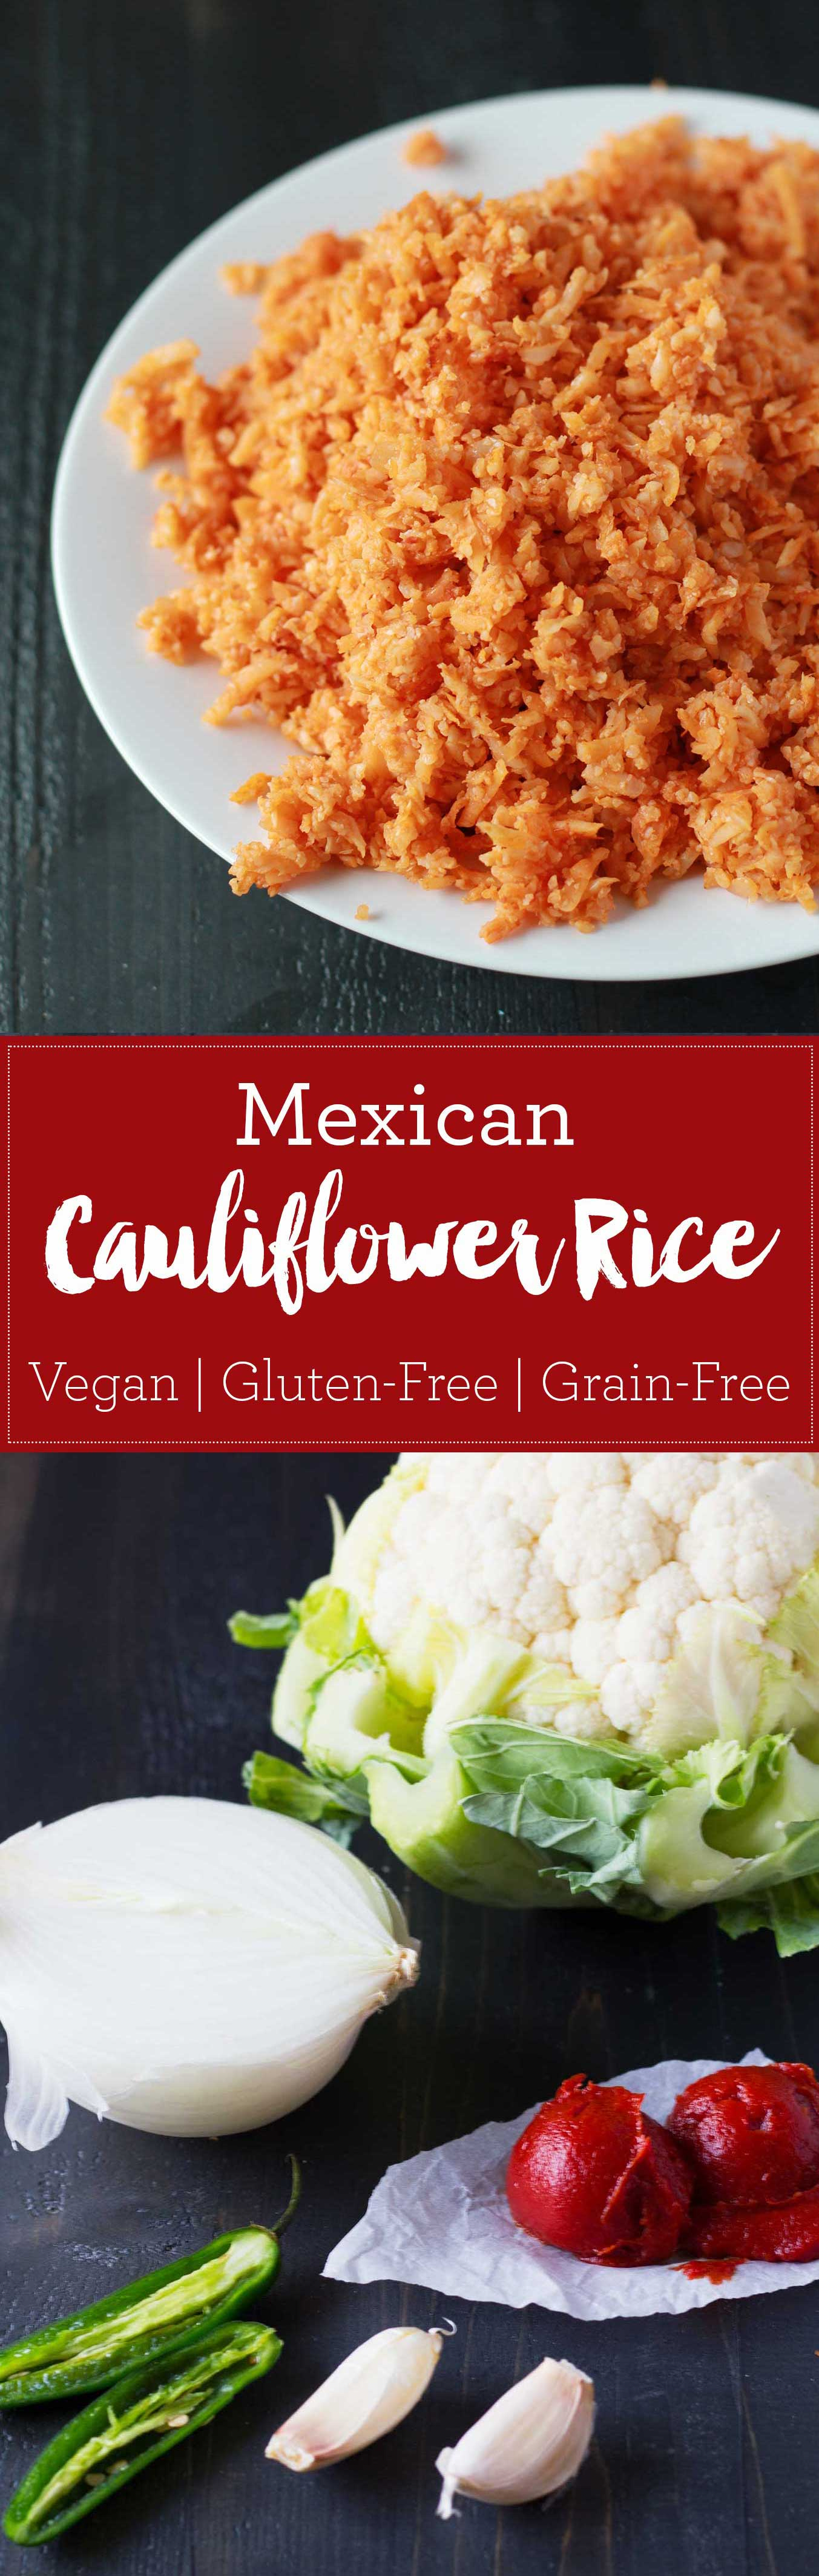 Mexican Cauliflower Rice (Coliflor Arroz Rojo) | http://eatwithinyourmeans.com